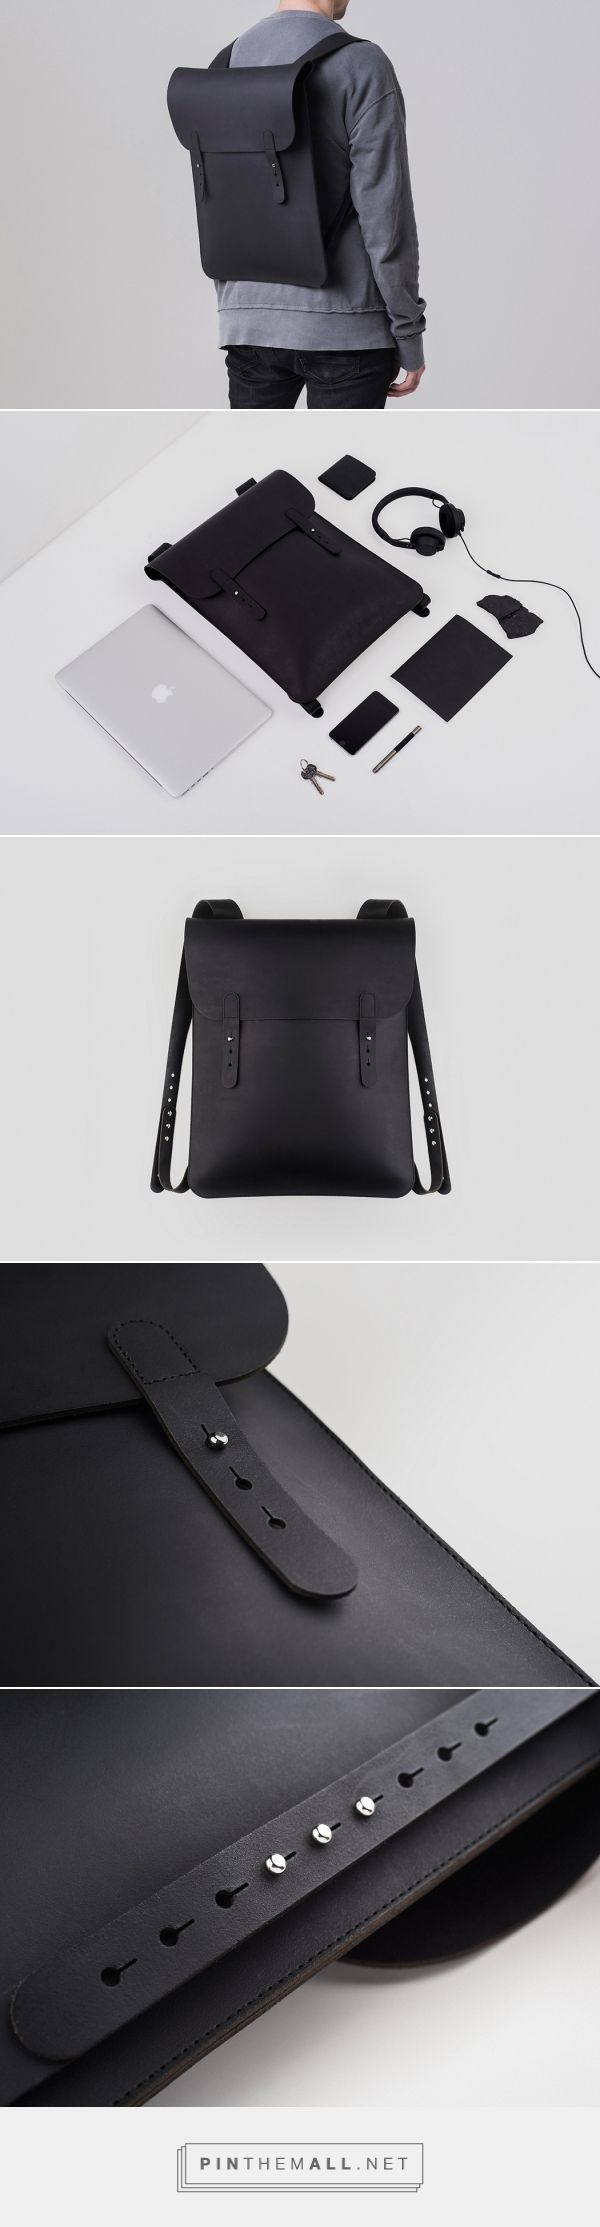 Look No Further for a Minimalist Backpack | Yanko Design - created via https://pinthemall.net